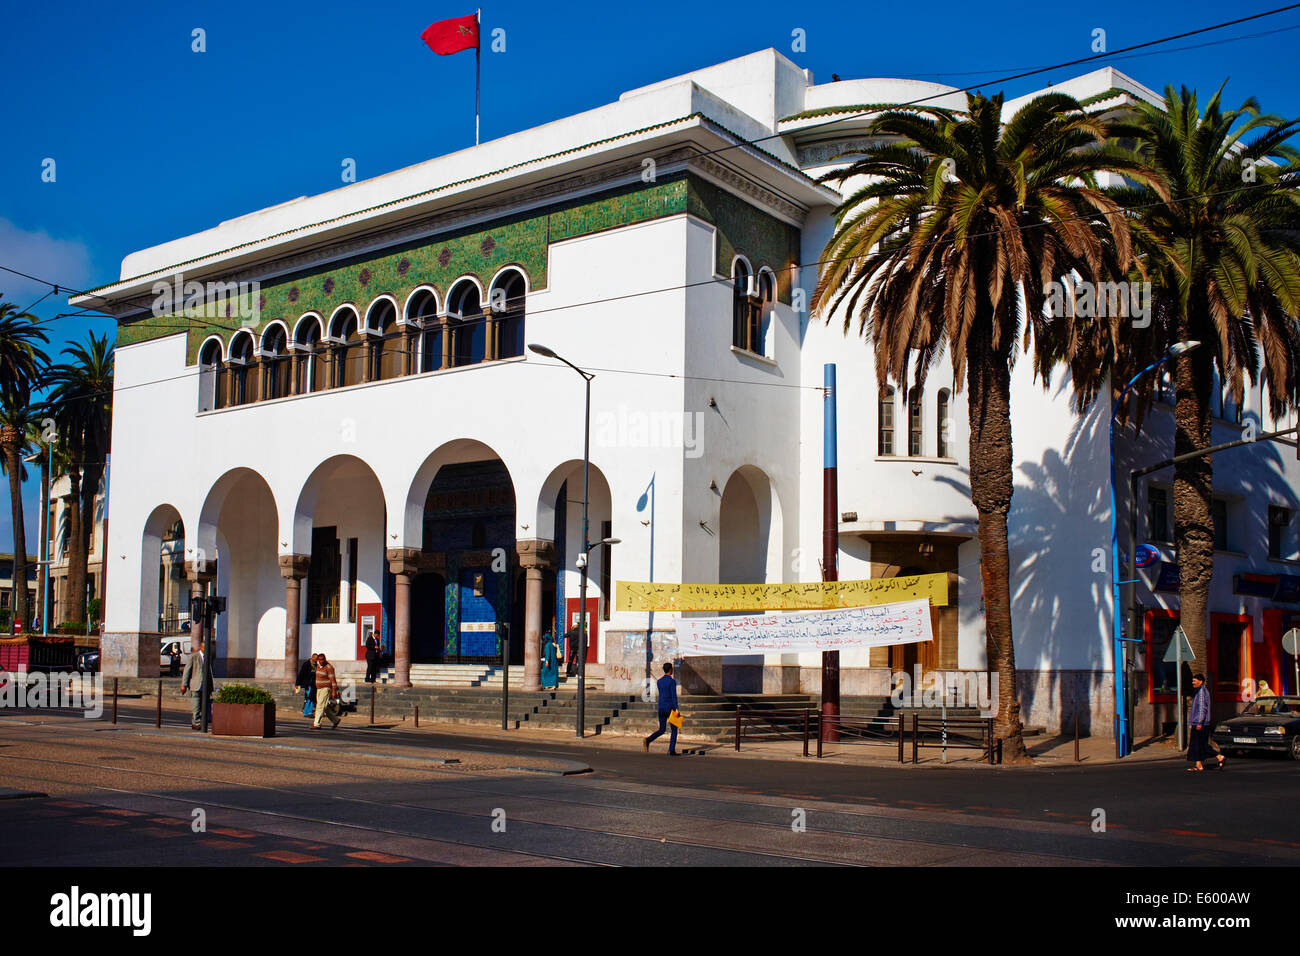 Casablanca post office stock photos & casablanca post office stock